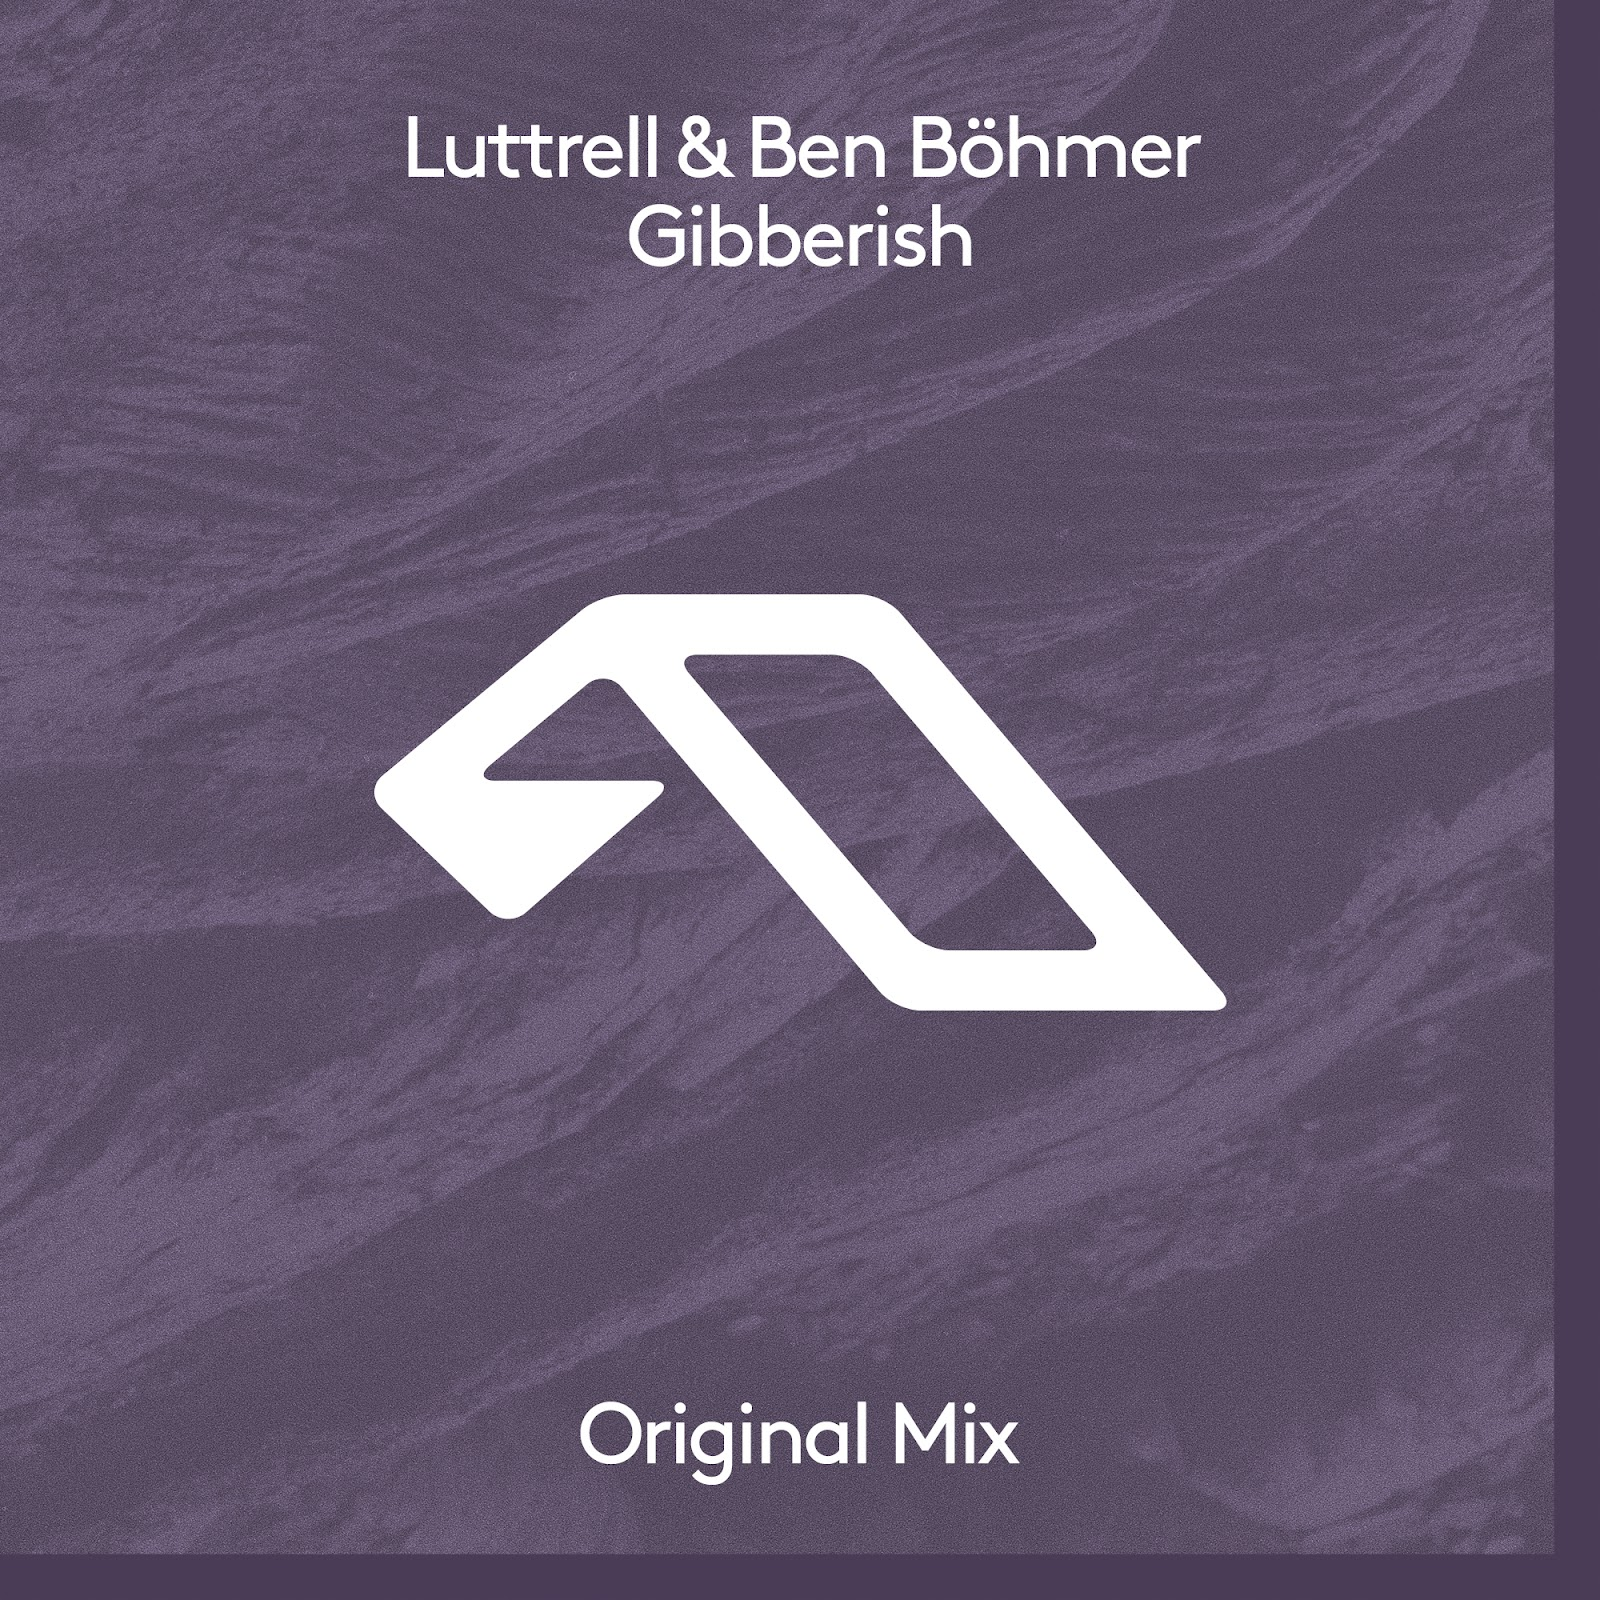 Luttrell & Ben Böhmer - Gibberish  Cover Art Courtesy: Anjunabeats